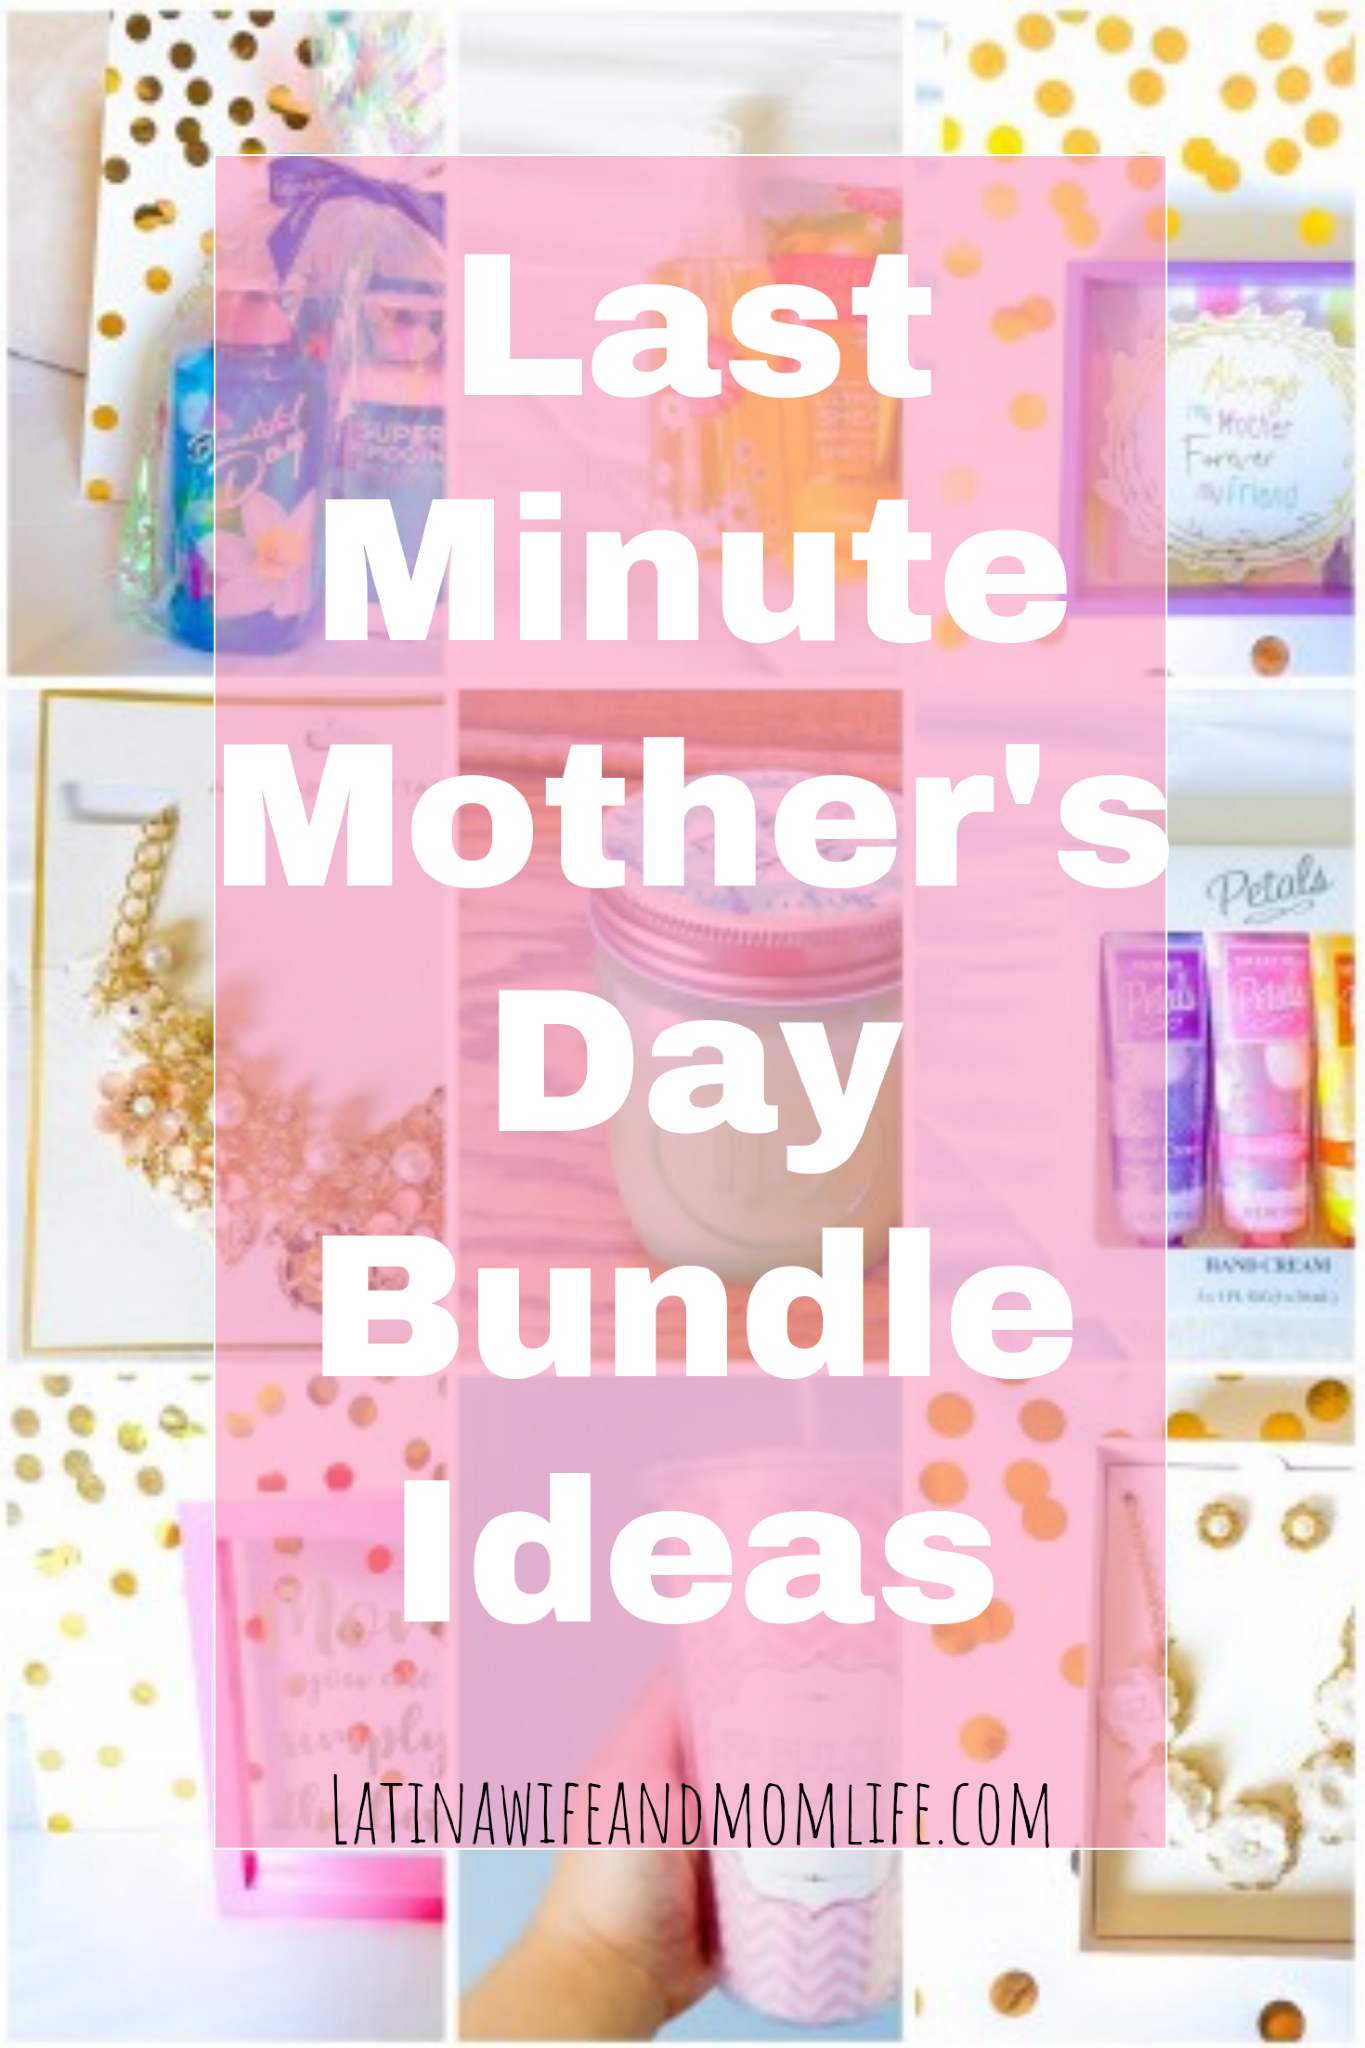 Can't come up with the perfect Mother's Day gift? Check out the following ideas to inspire you with appealing ideas for one, happy sized, thoughtfully elaborated gift bundle!